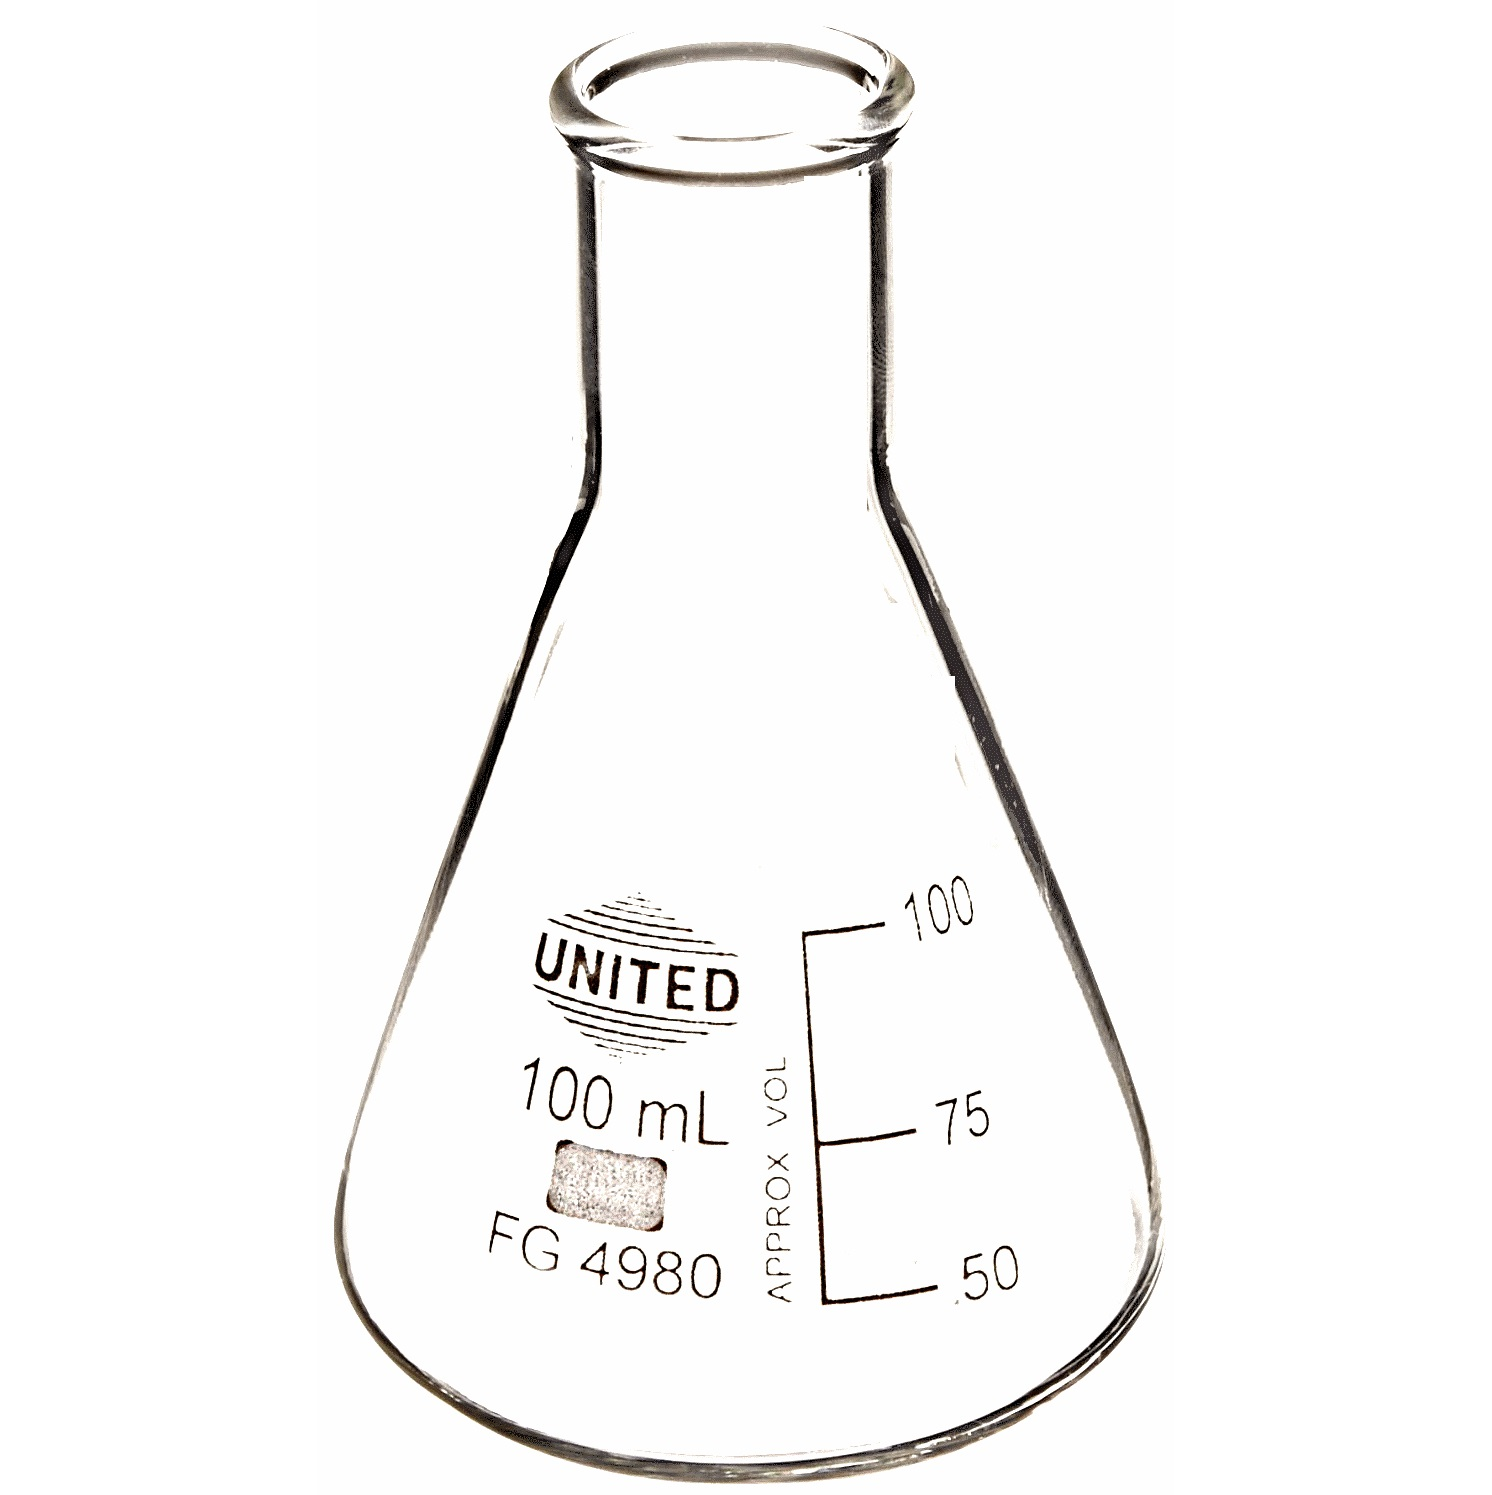 laboratory aids glass erlenmeyer narrow and wide mouth flasks